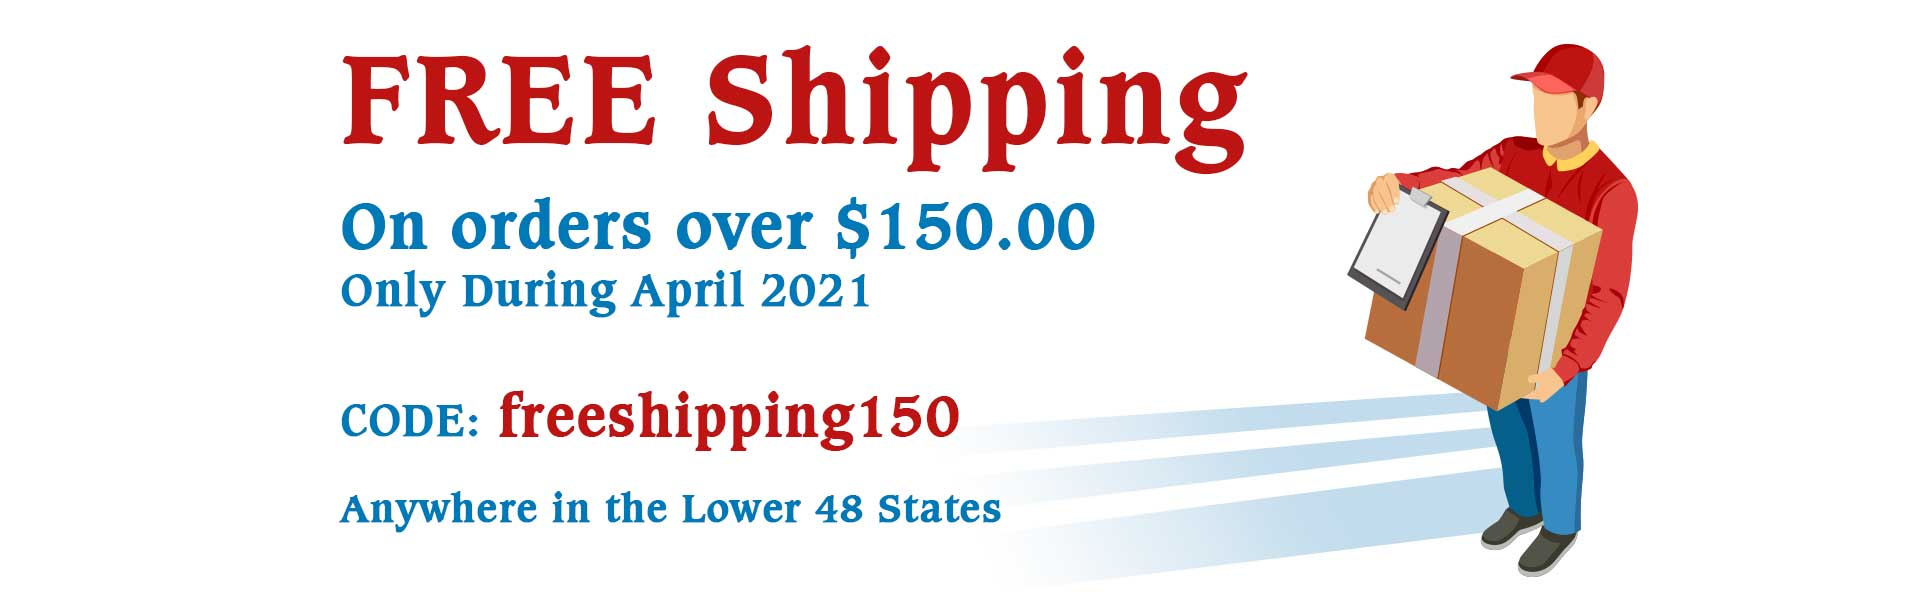 Online Grocery - Free Shipping